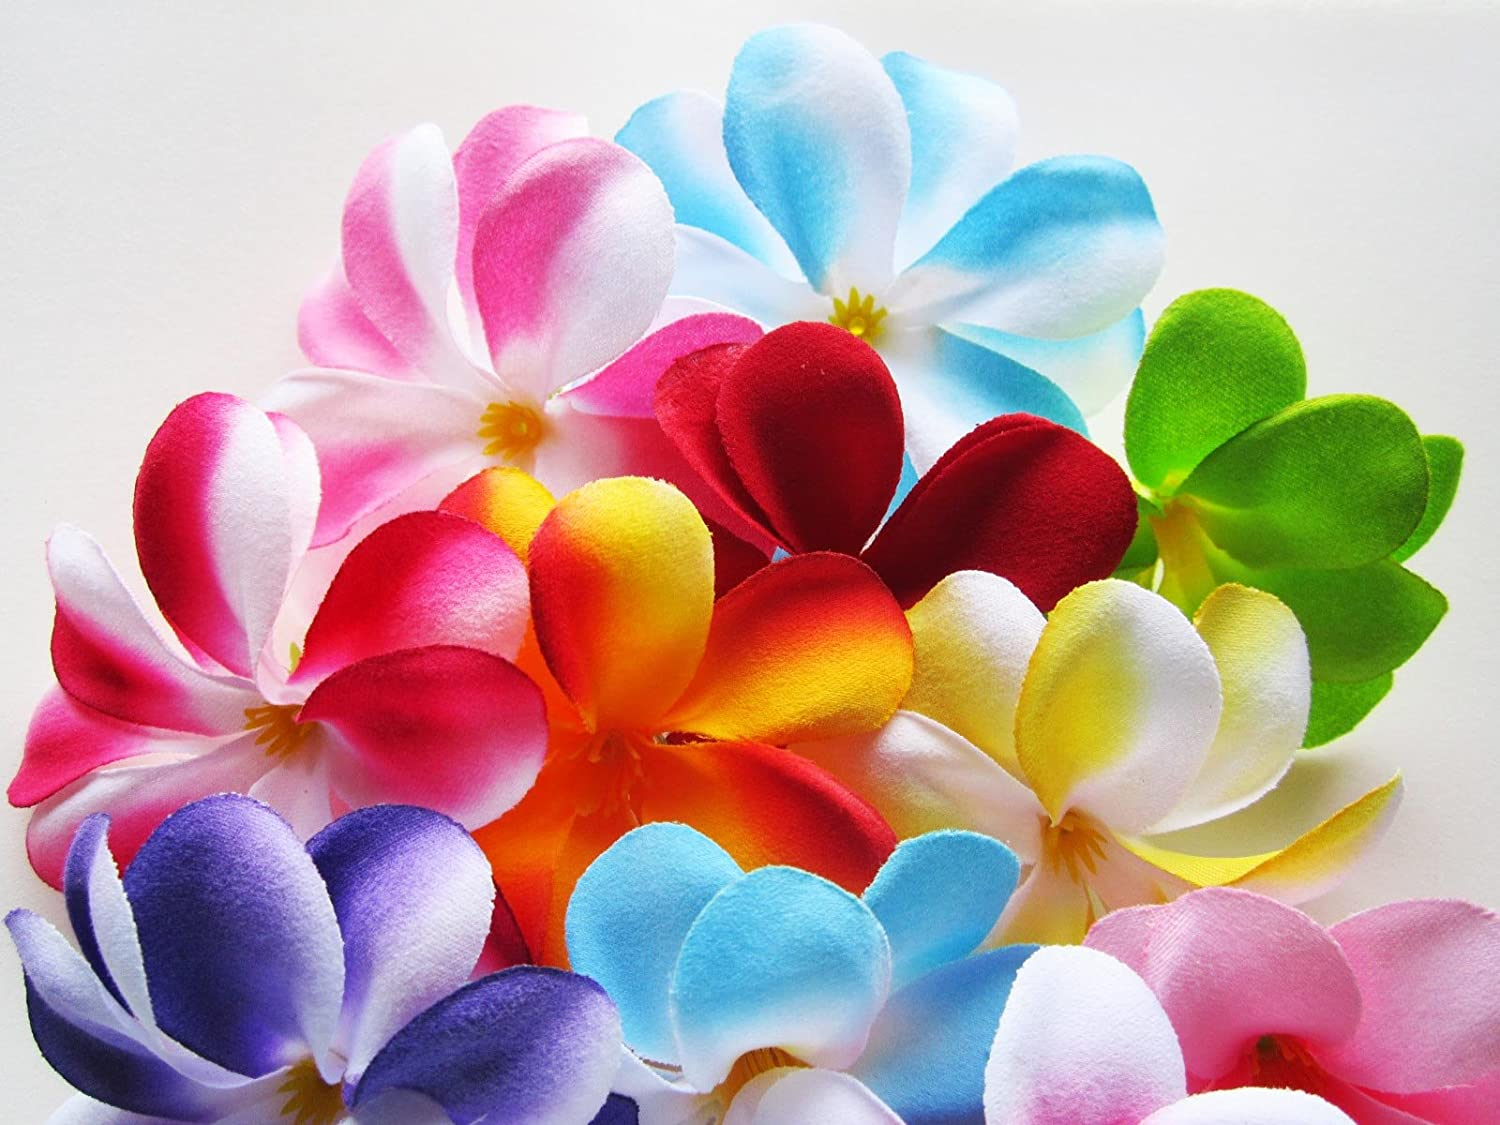 Amazon 100 Assorted Hawaiian Plumeria Frangipani Silk Flower